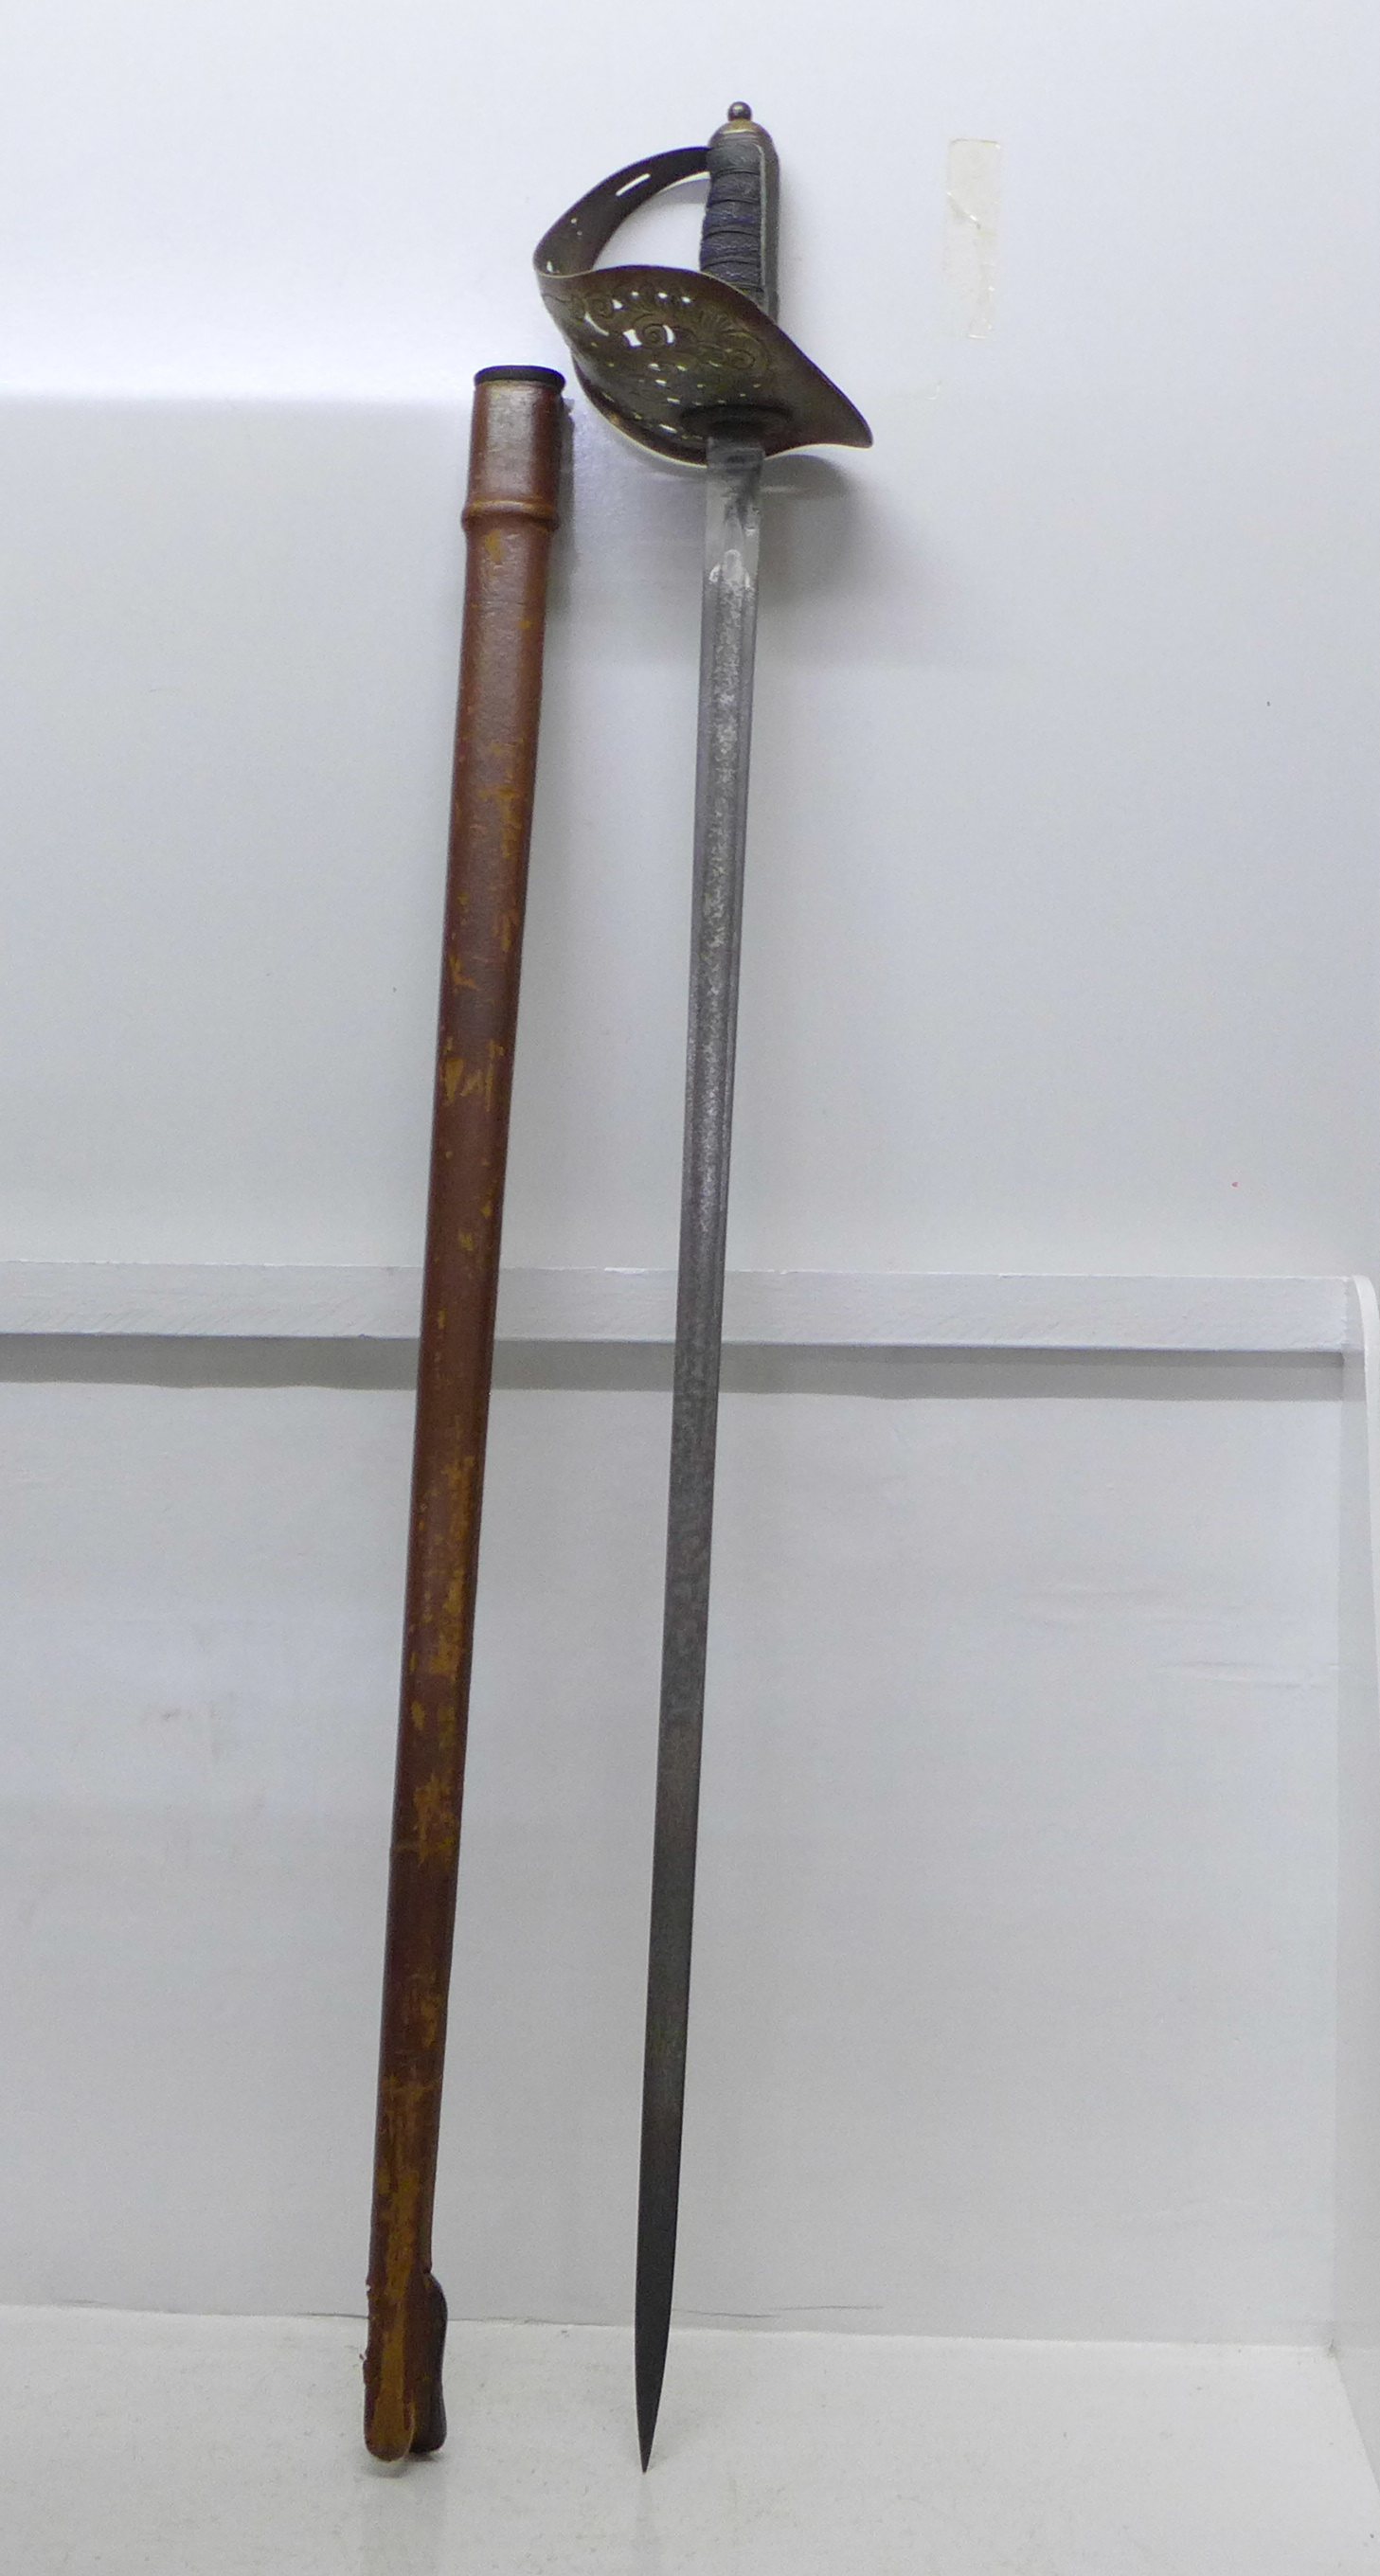 A George V officer's sword with scabbard, the blade marked James Deakin & Sons Limited, Sheffield,